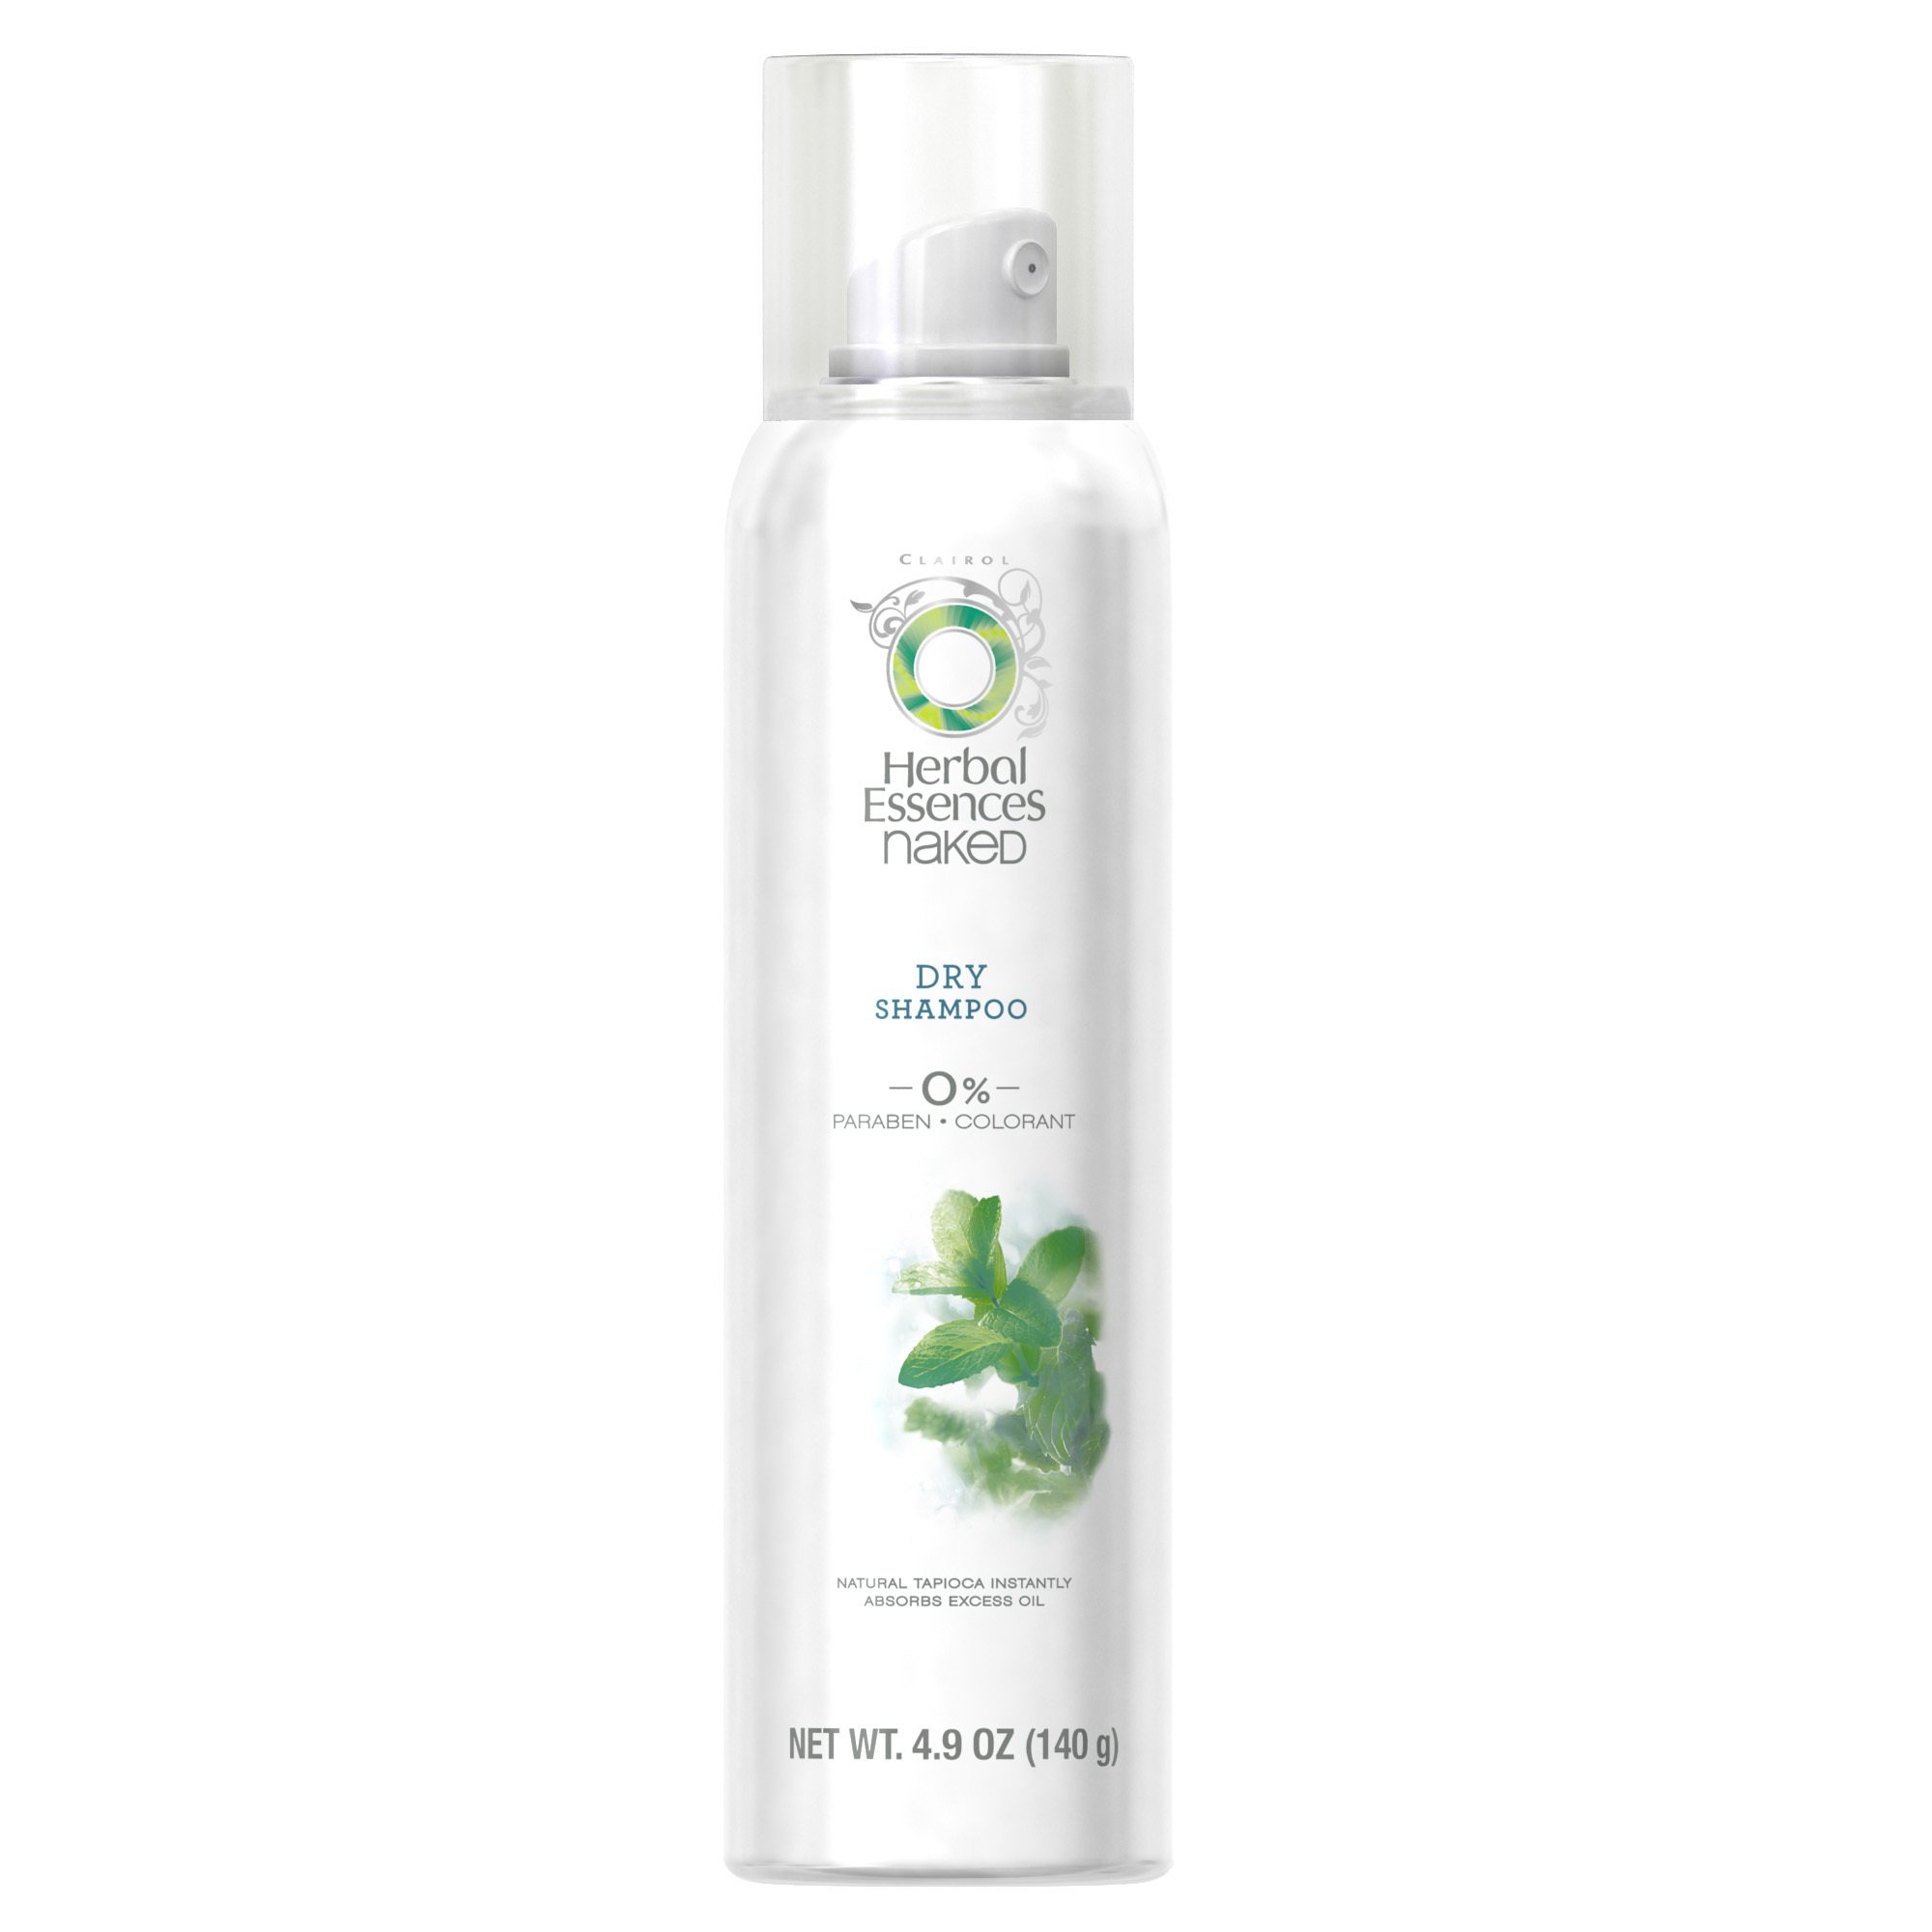 Herbal Essences Dry Shampoo 4.9 Oz